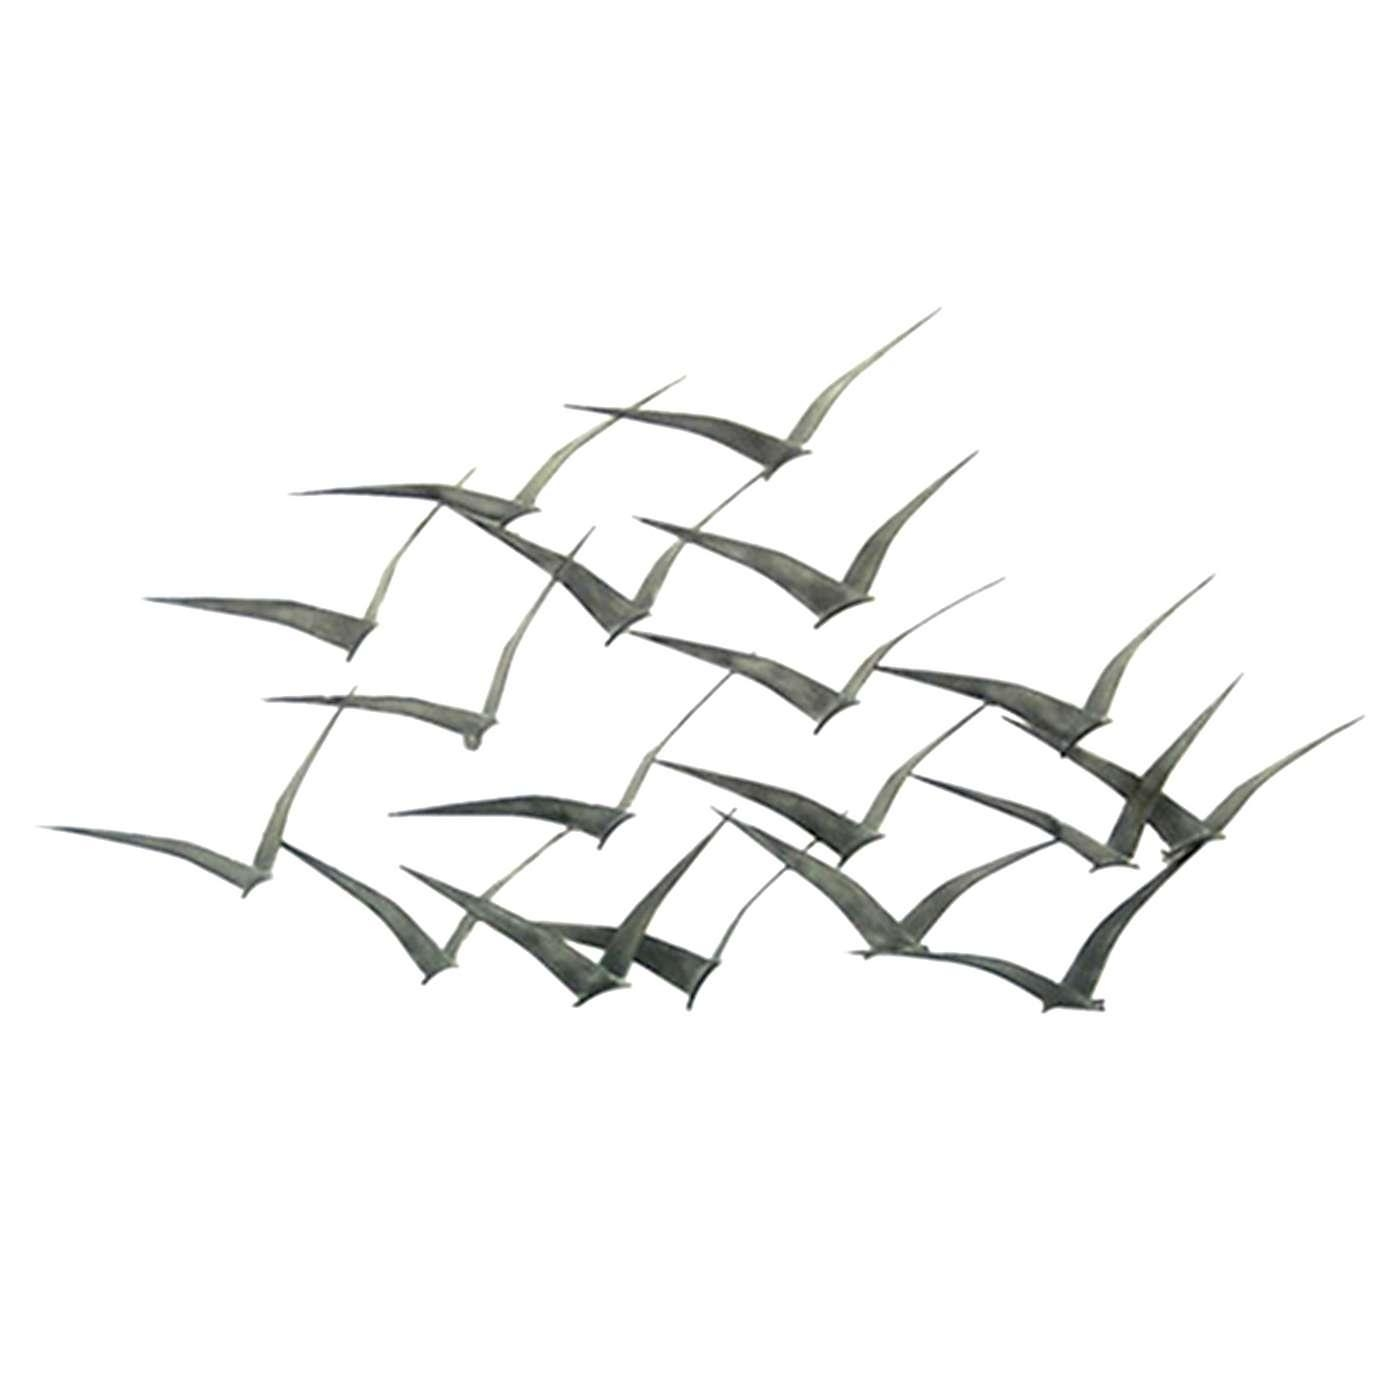 Amazing Metal Wall Art Birds On A Branch Curtis Jere Birds In Throughout Metal Wall Art Birds In Flight (Photo 6 of 20)